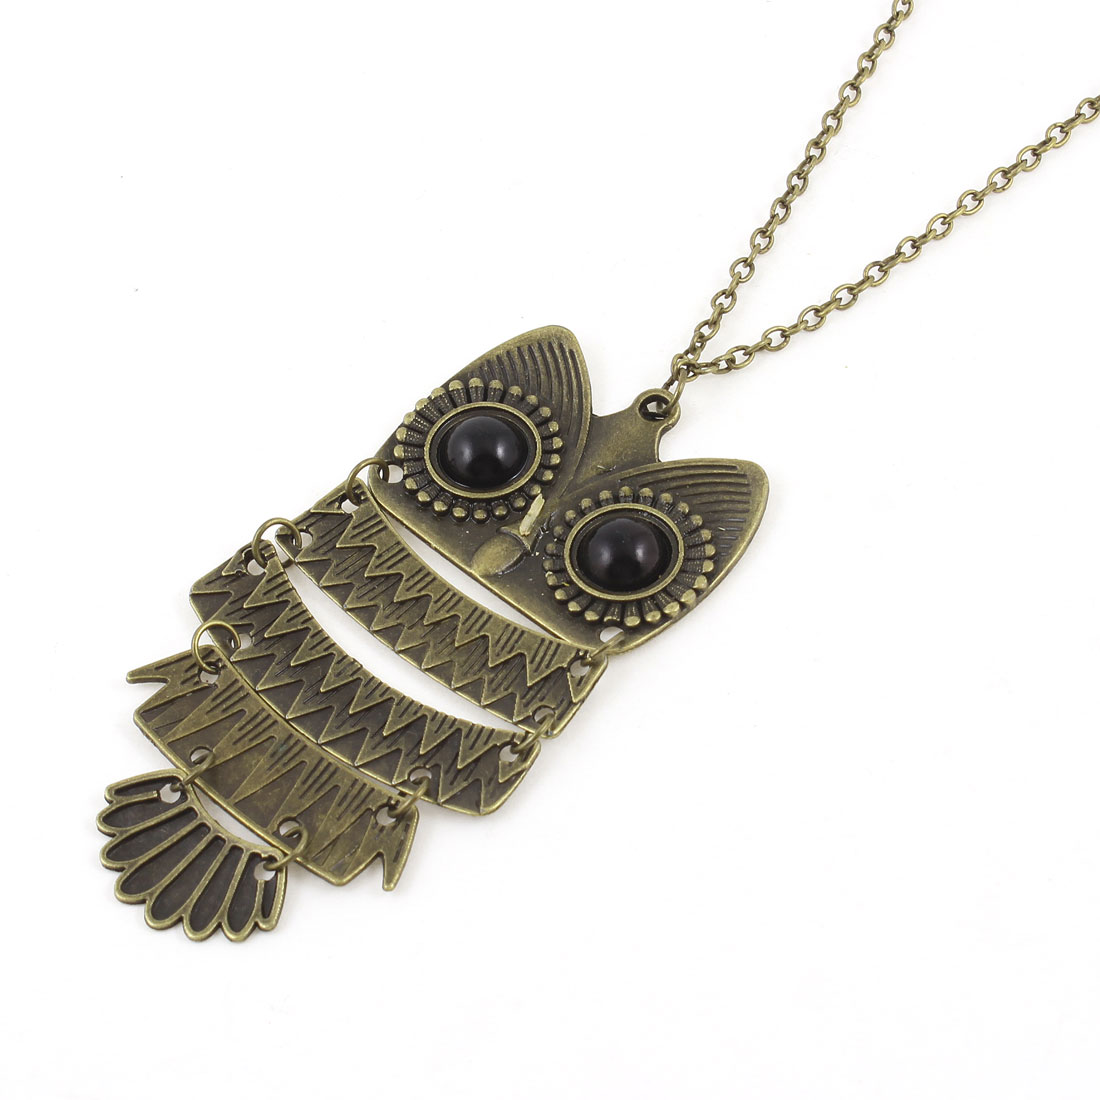 Big Black Eyes Owl Shape Detailing Sweater Necklace Bronze Tone